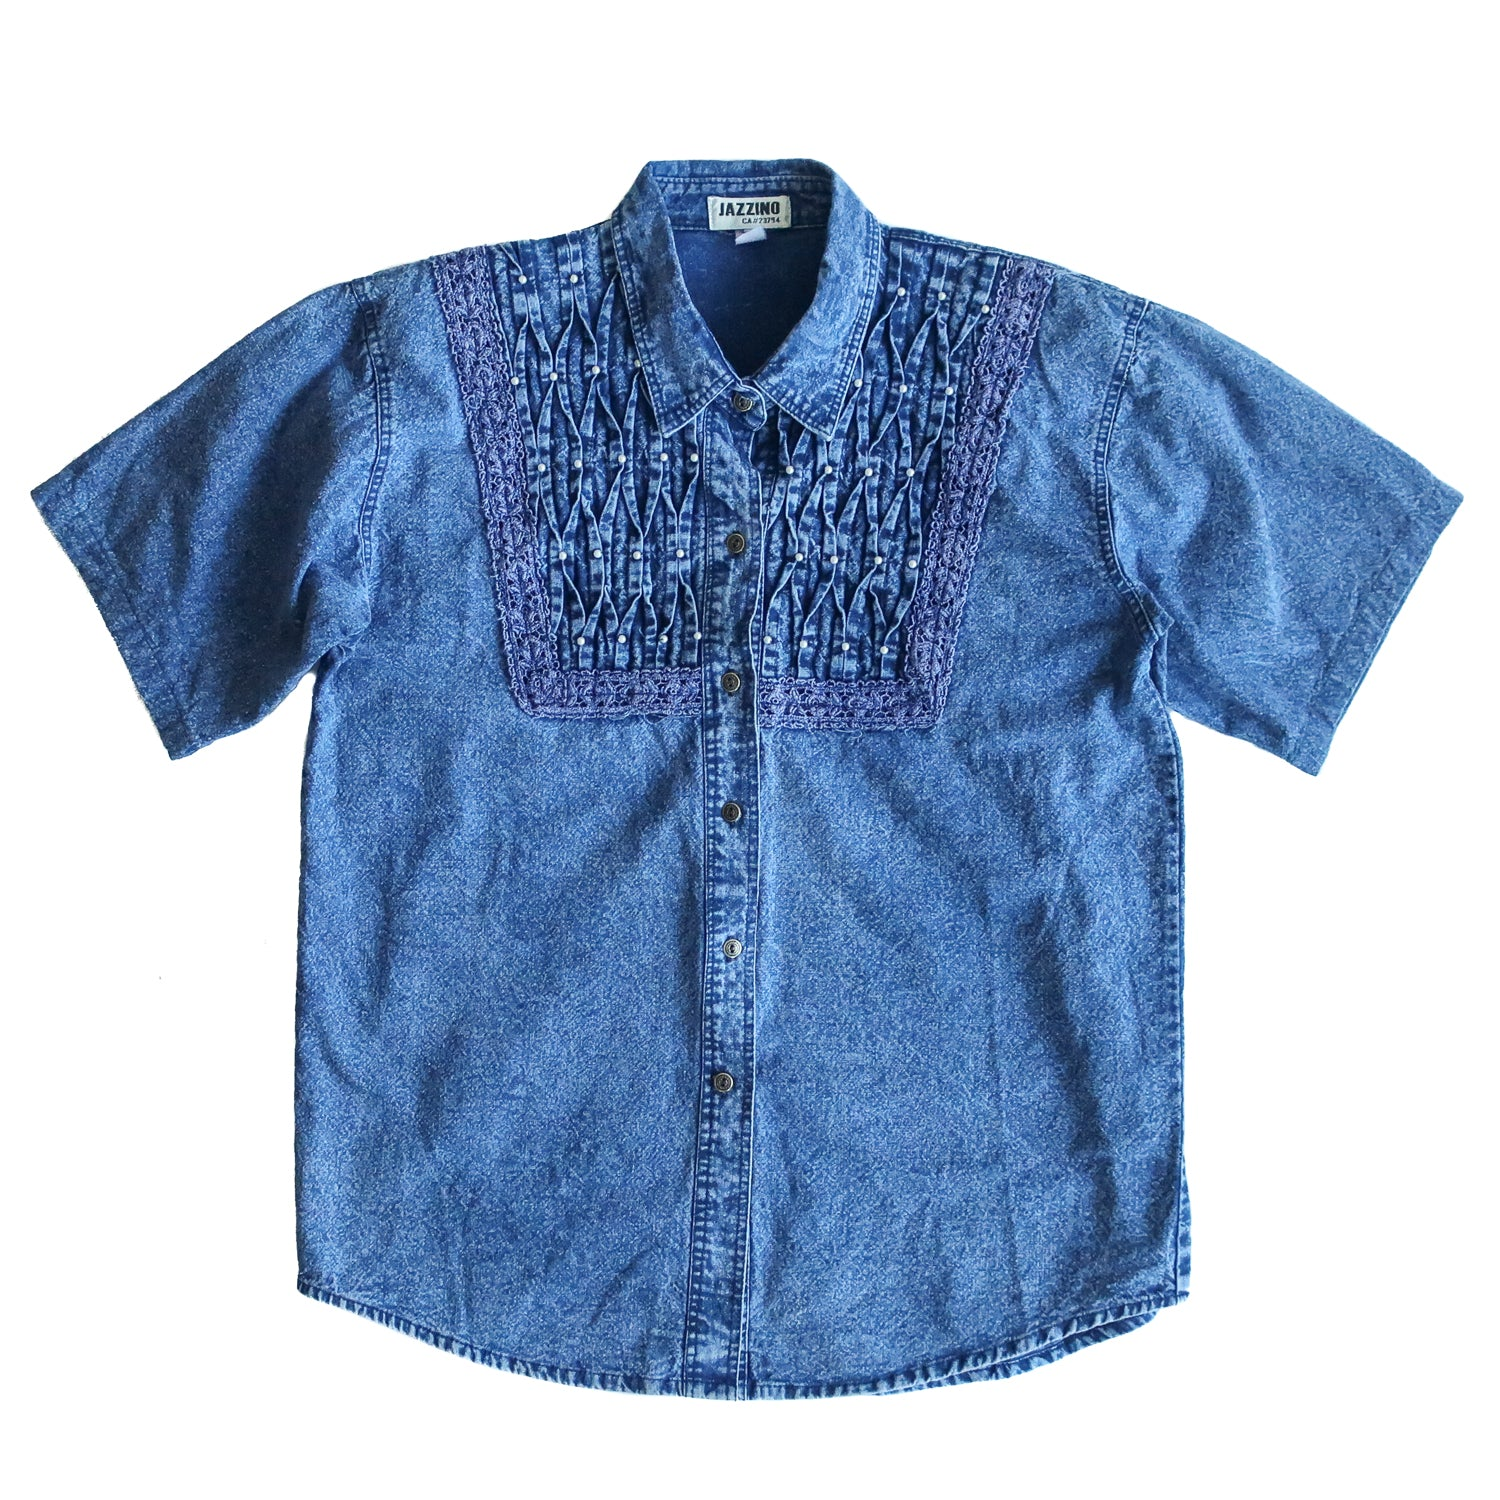 Second Room Shop Vintage. Shop Vintage, Shop Sustainable. Vintage denim shirt with slight acid washed finish, and details on the front with gathered/pleated denim, and sewn on pearl beads. This shirt has shoulder pads which could be easily removed.